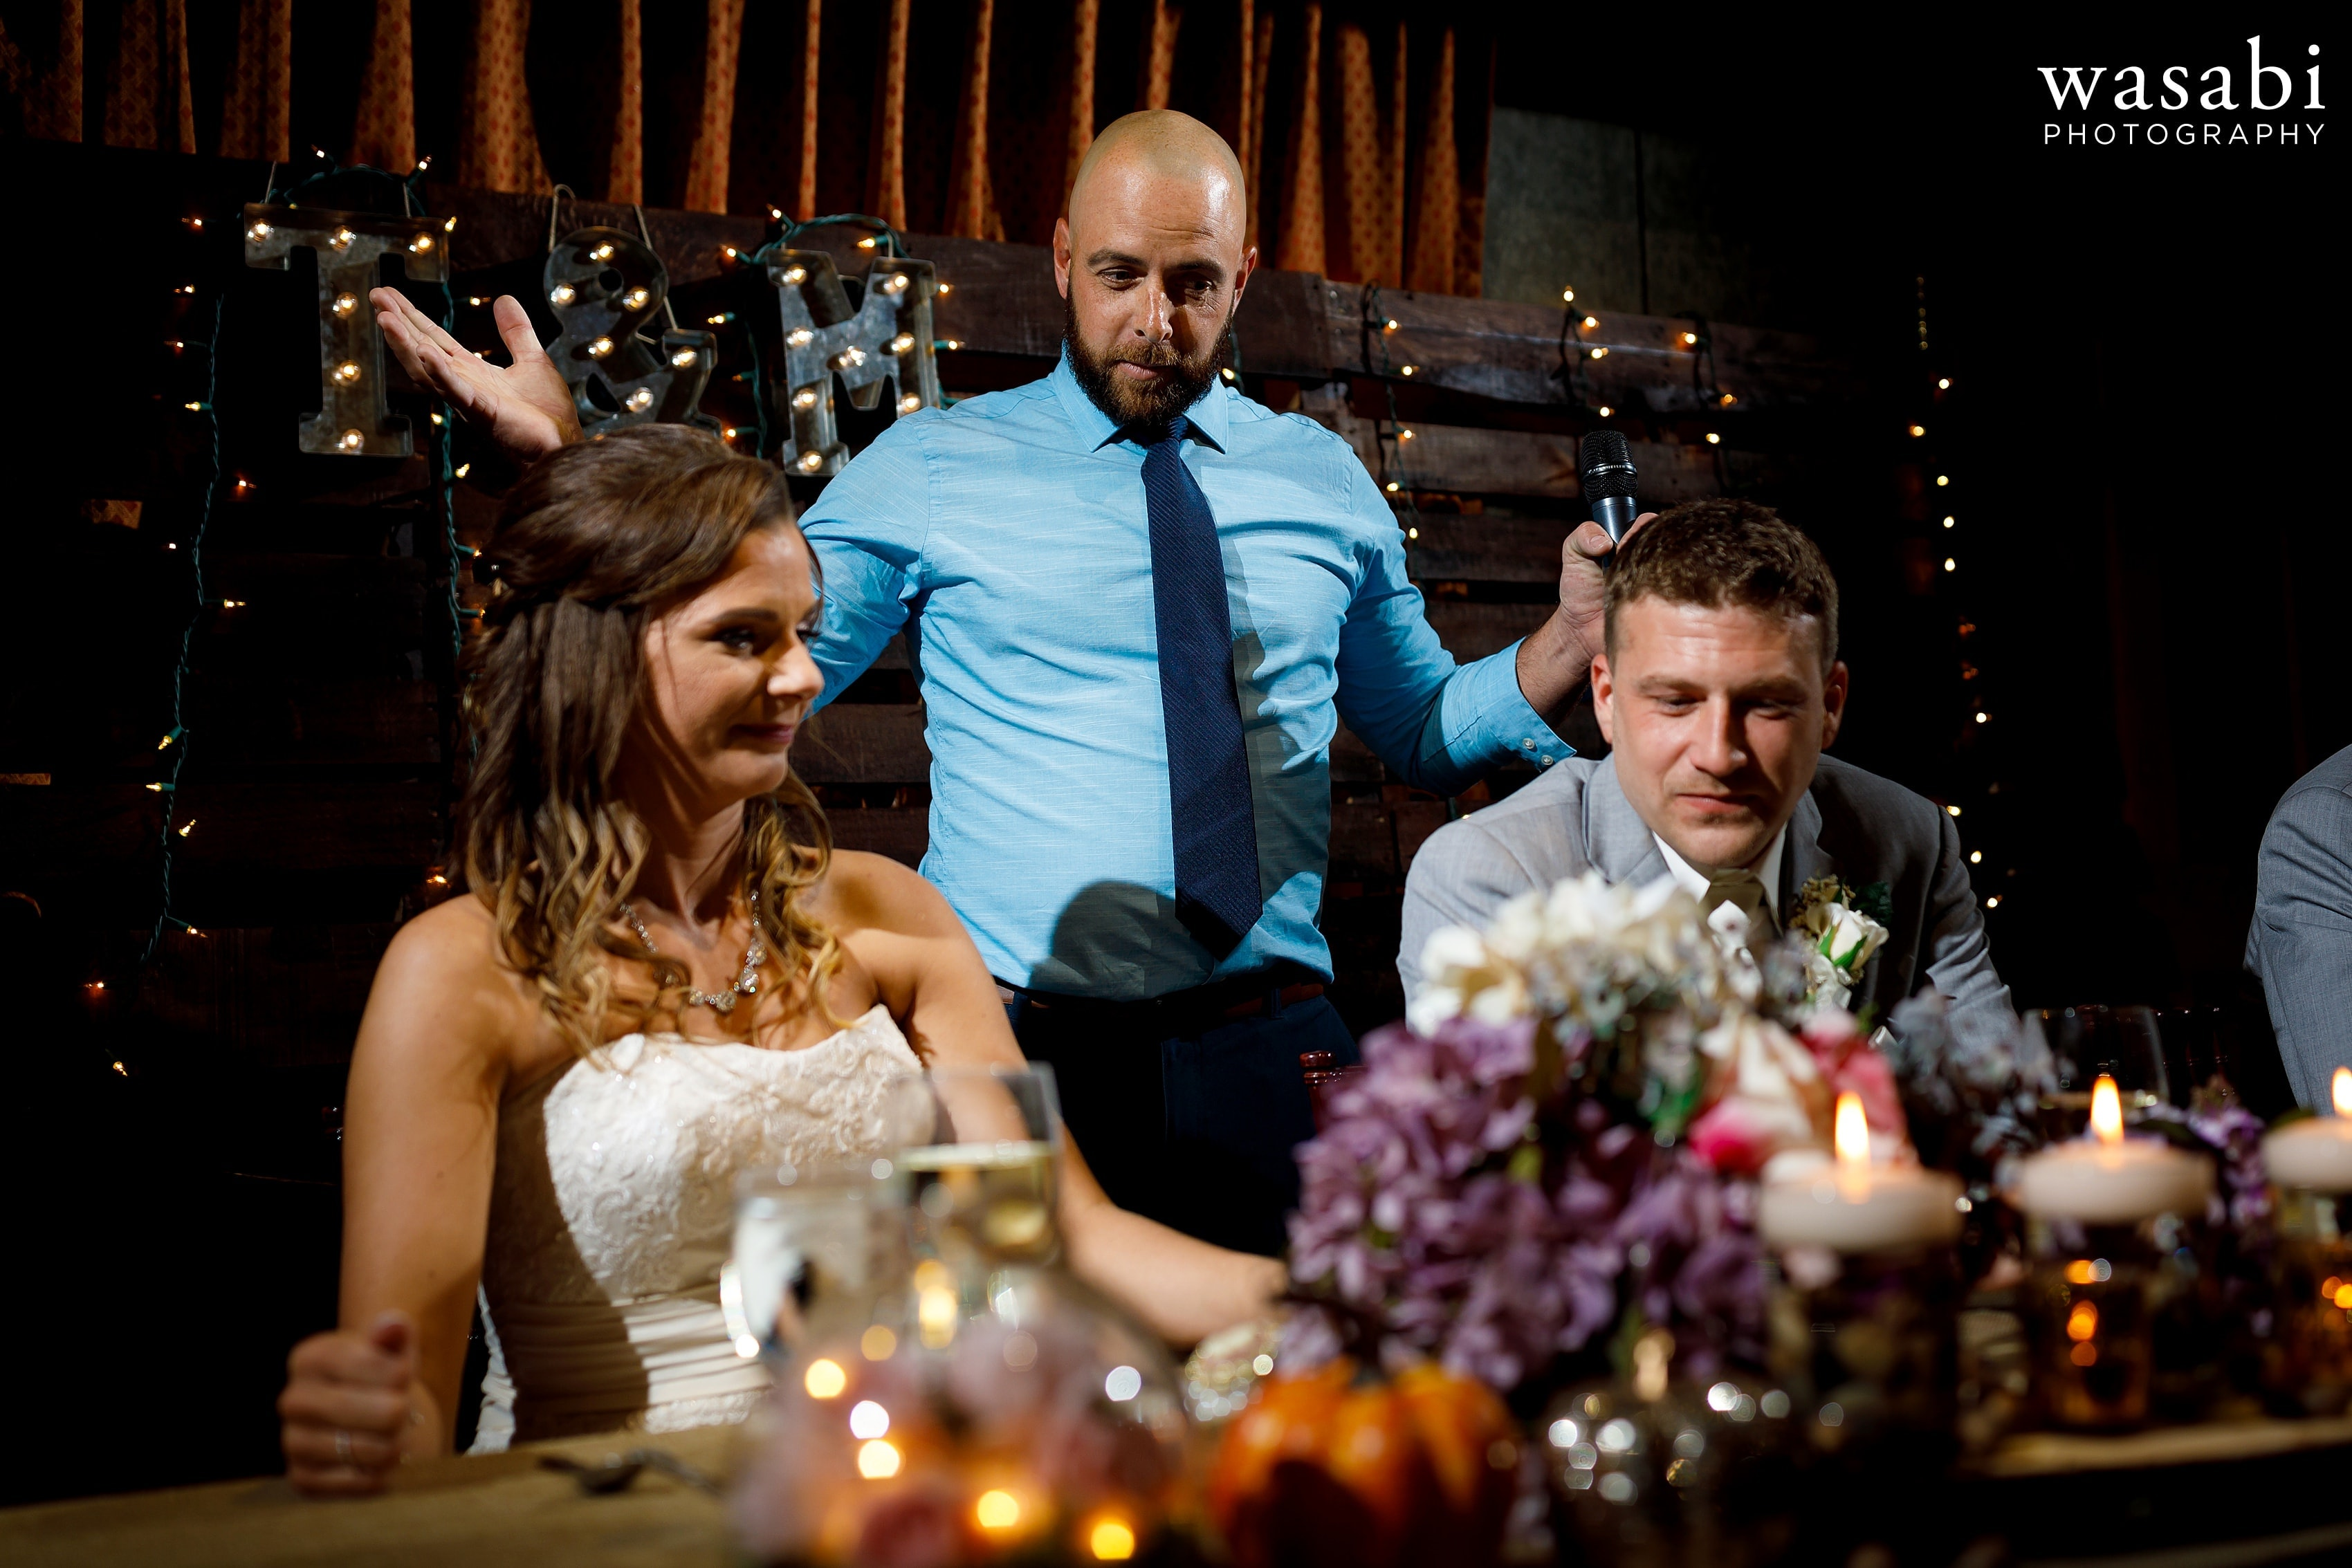 Friend of the groom gives toast during Buck's Run Golf Club wedding reception in Mount Pleasant, Michigan.